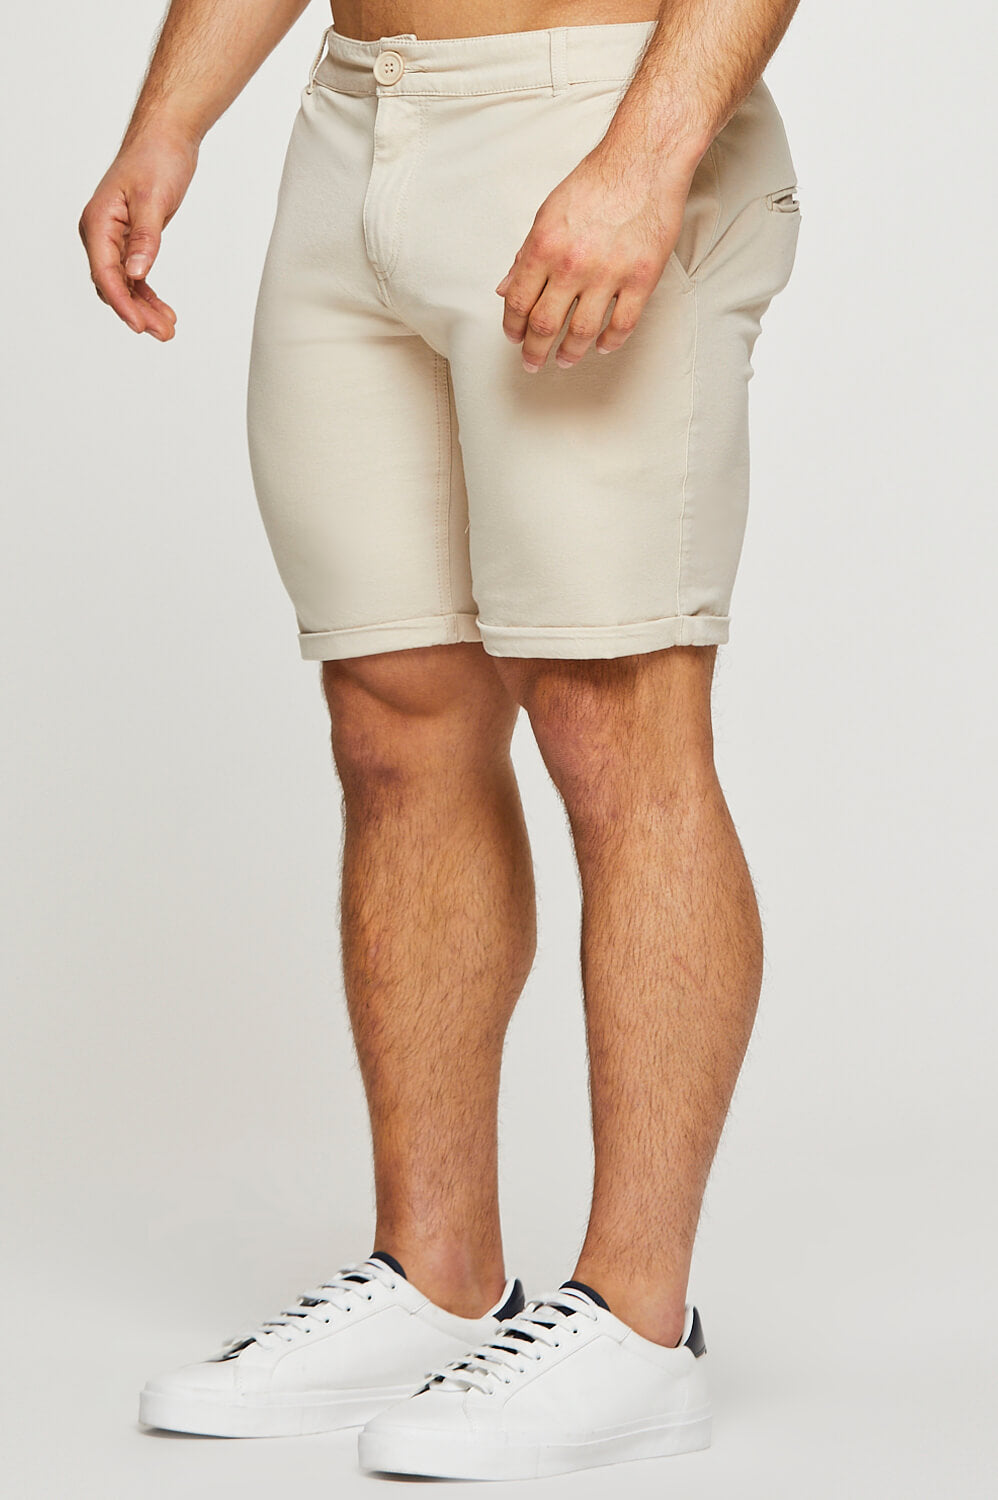 Essential Chino Shorts in Sand